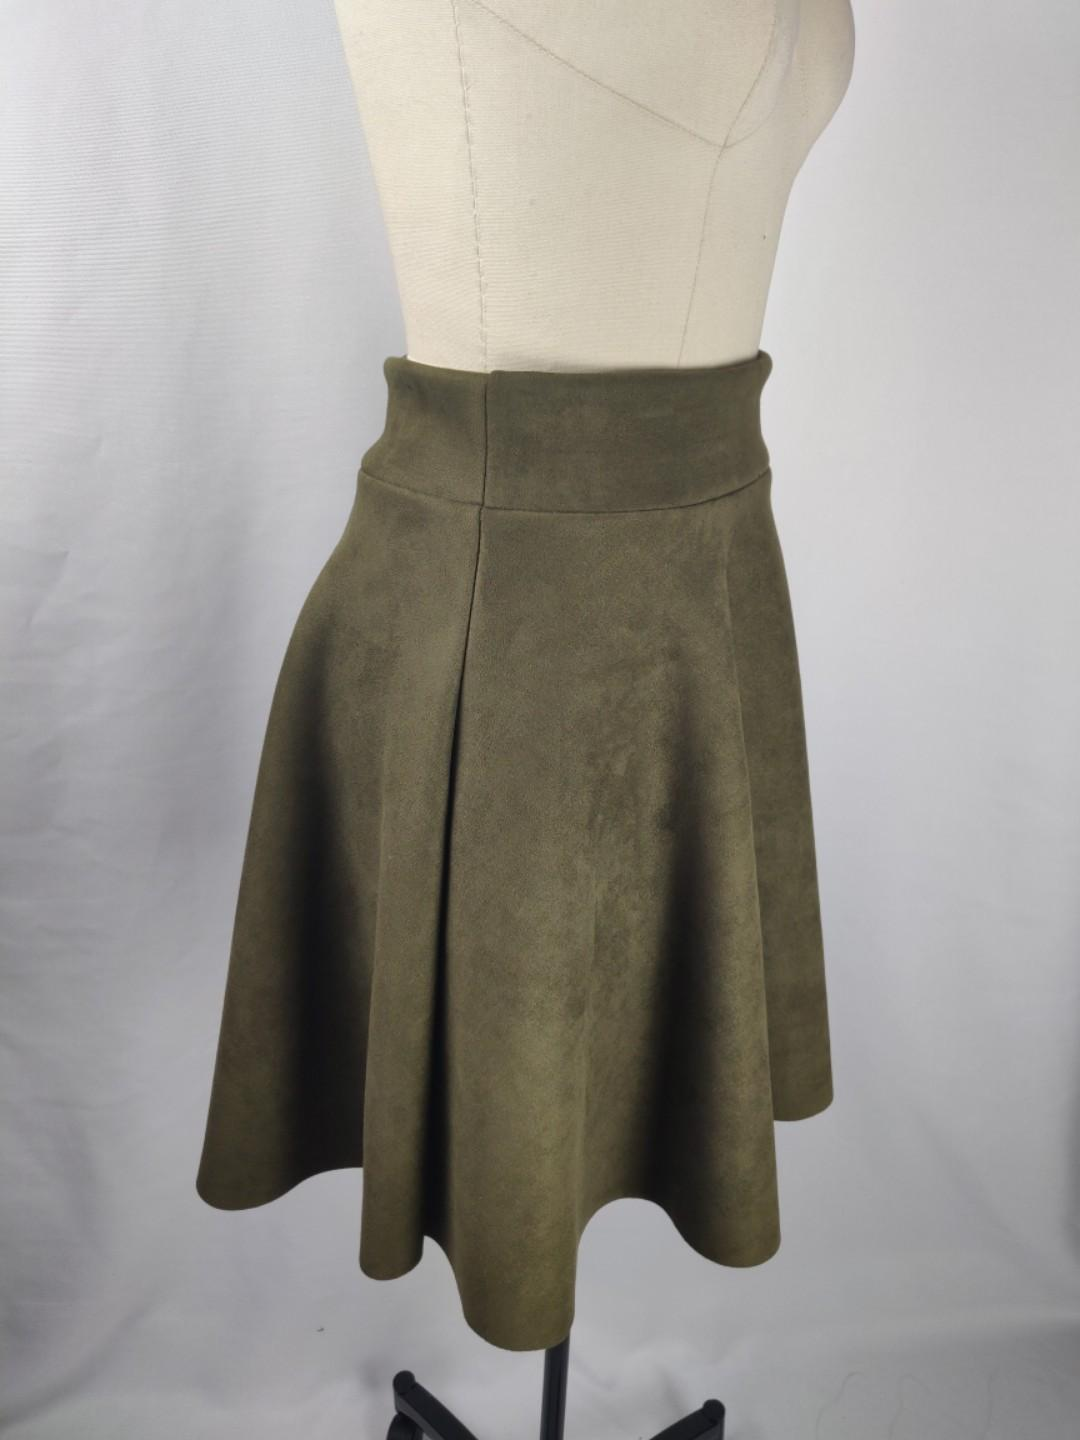 NWOT Ladies army green above the knee skirt size 4